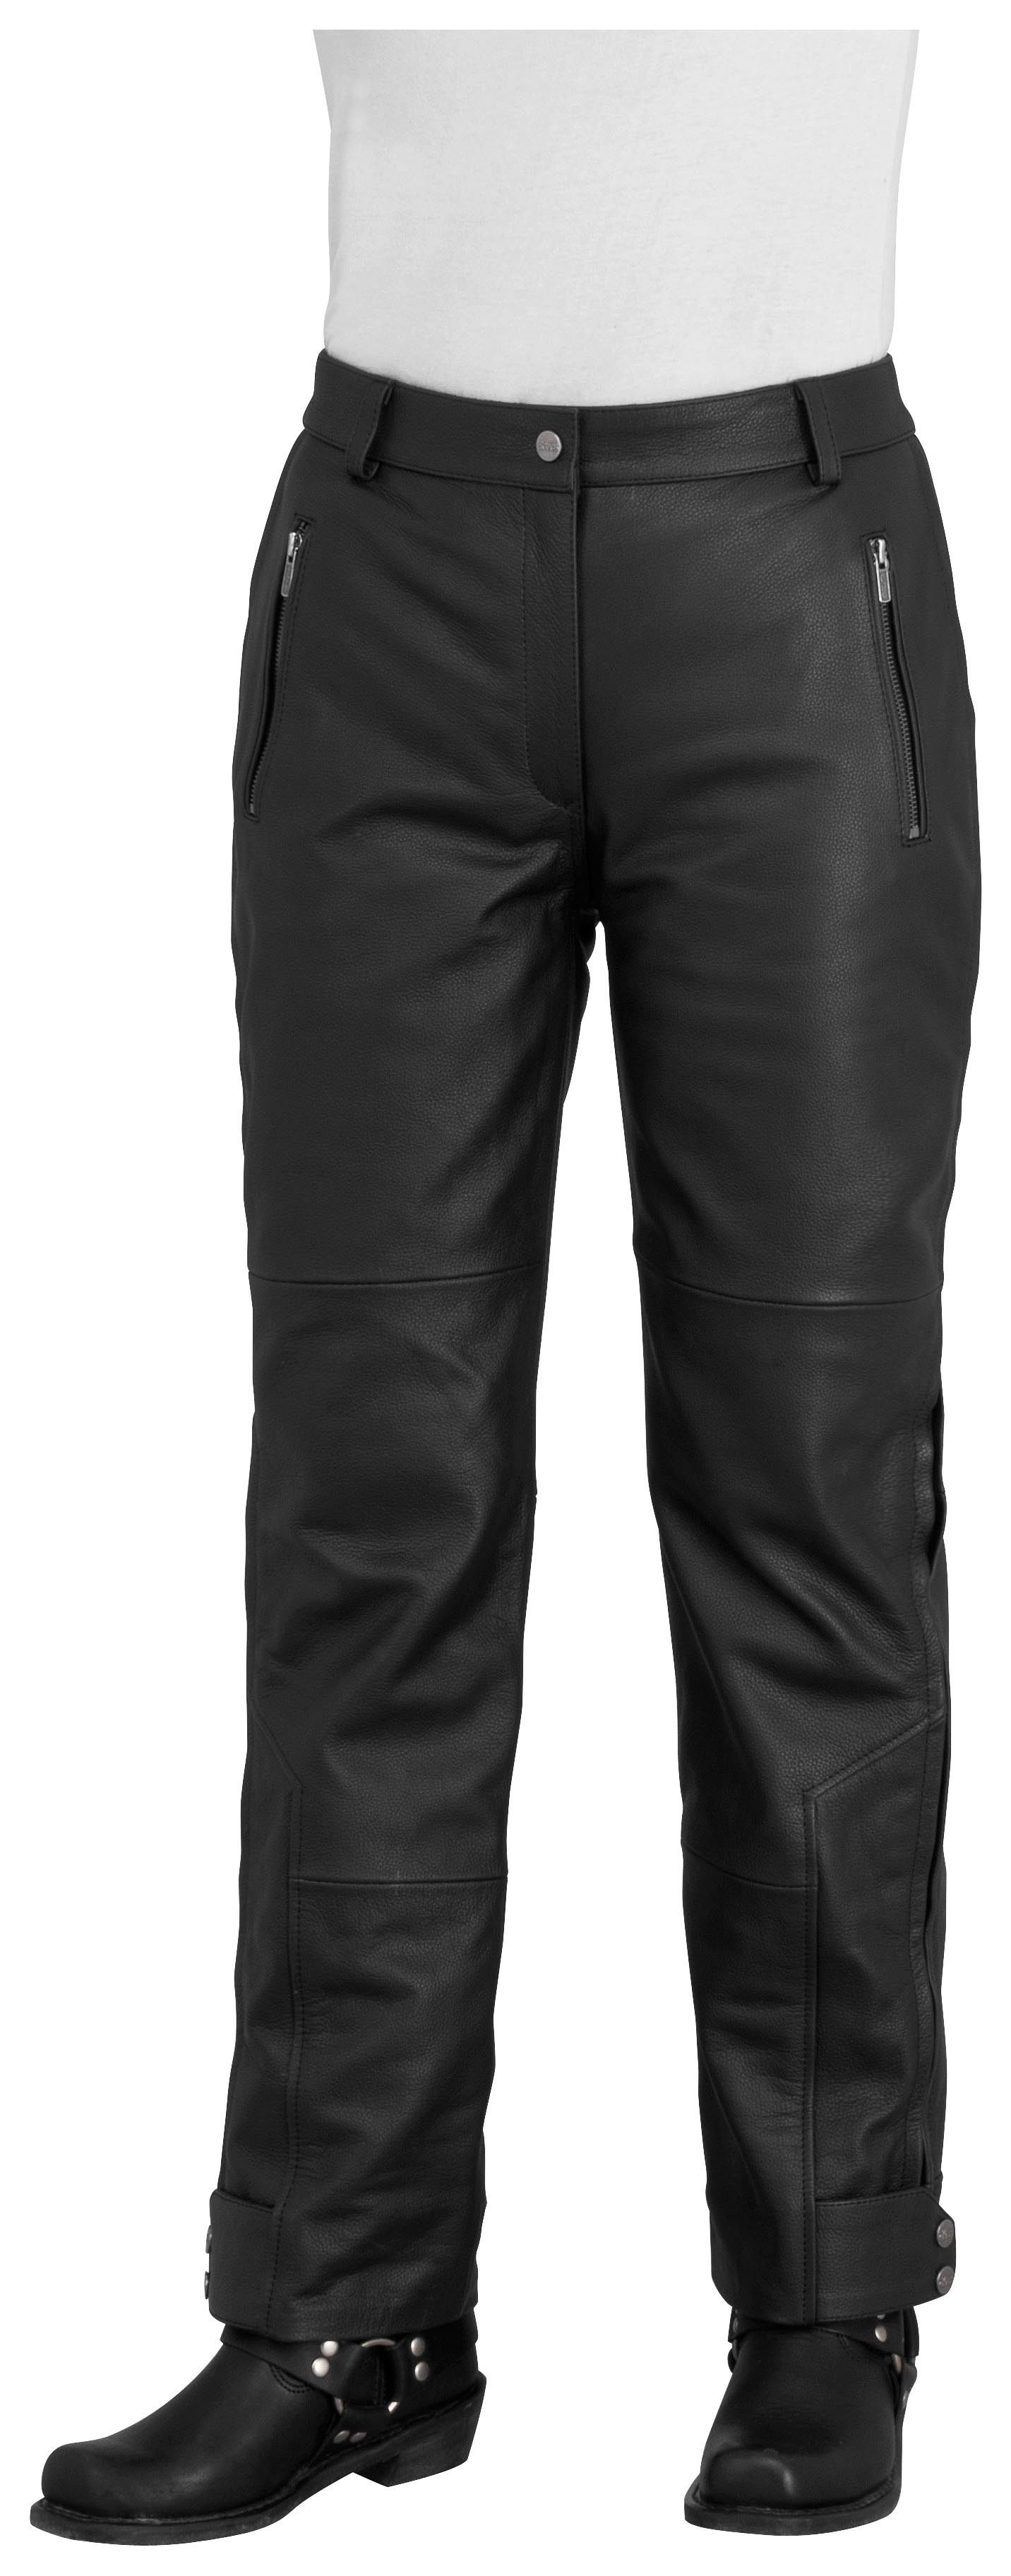 Popular Buffalo Turin Ladies Motorcycle Trousers Womens Waterproof Textile Thermal Pants